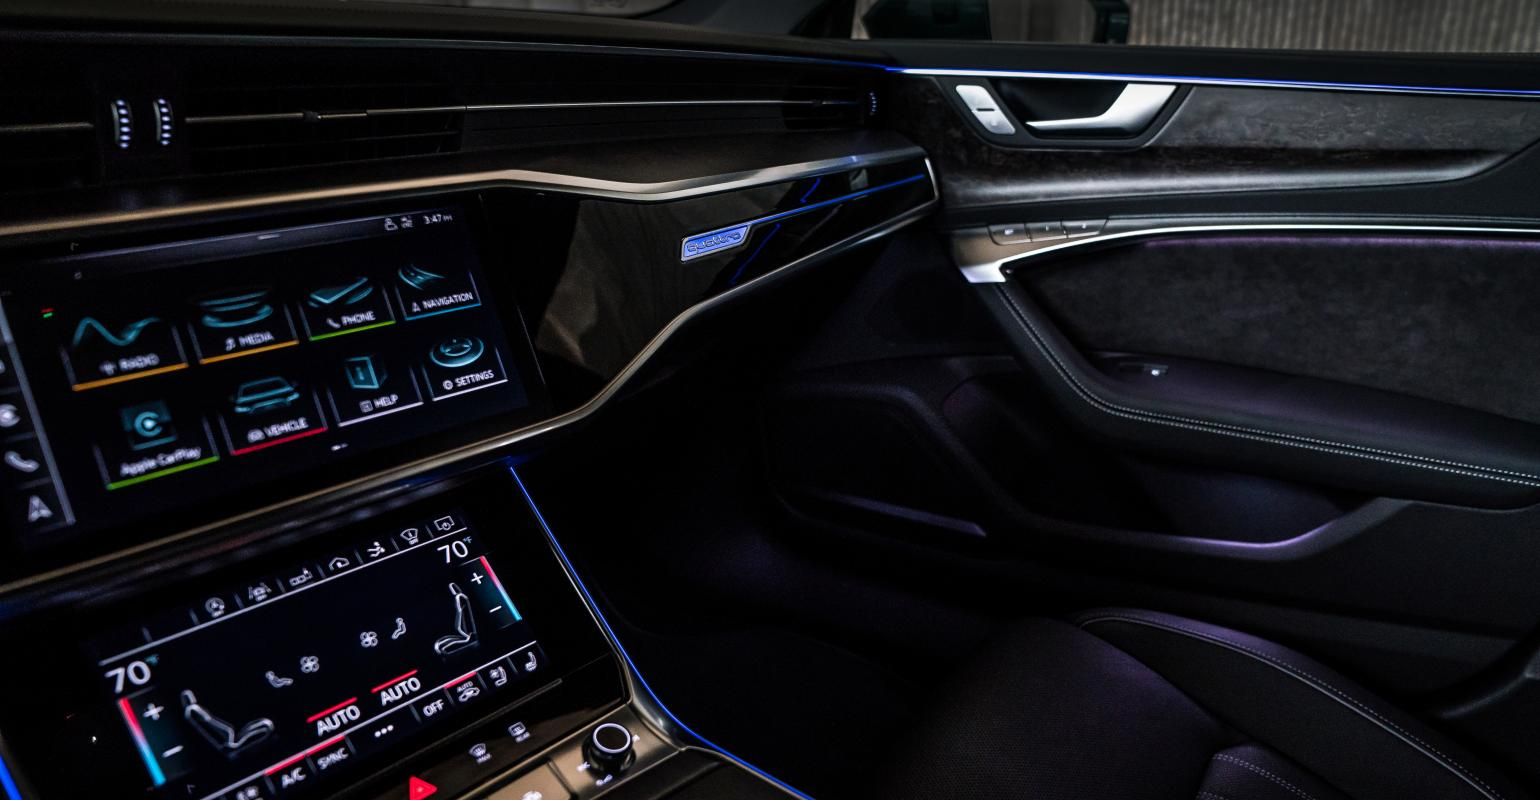 Audi A7 Interior Lighting Awesome Home